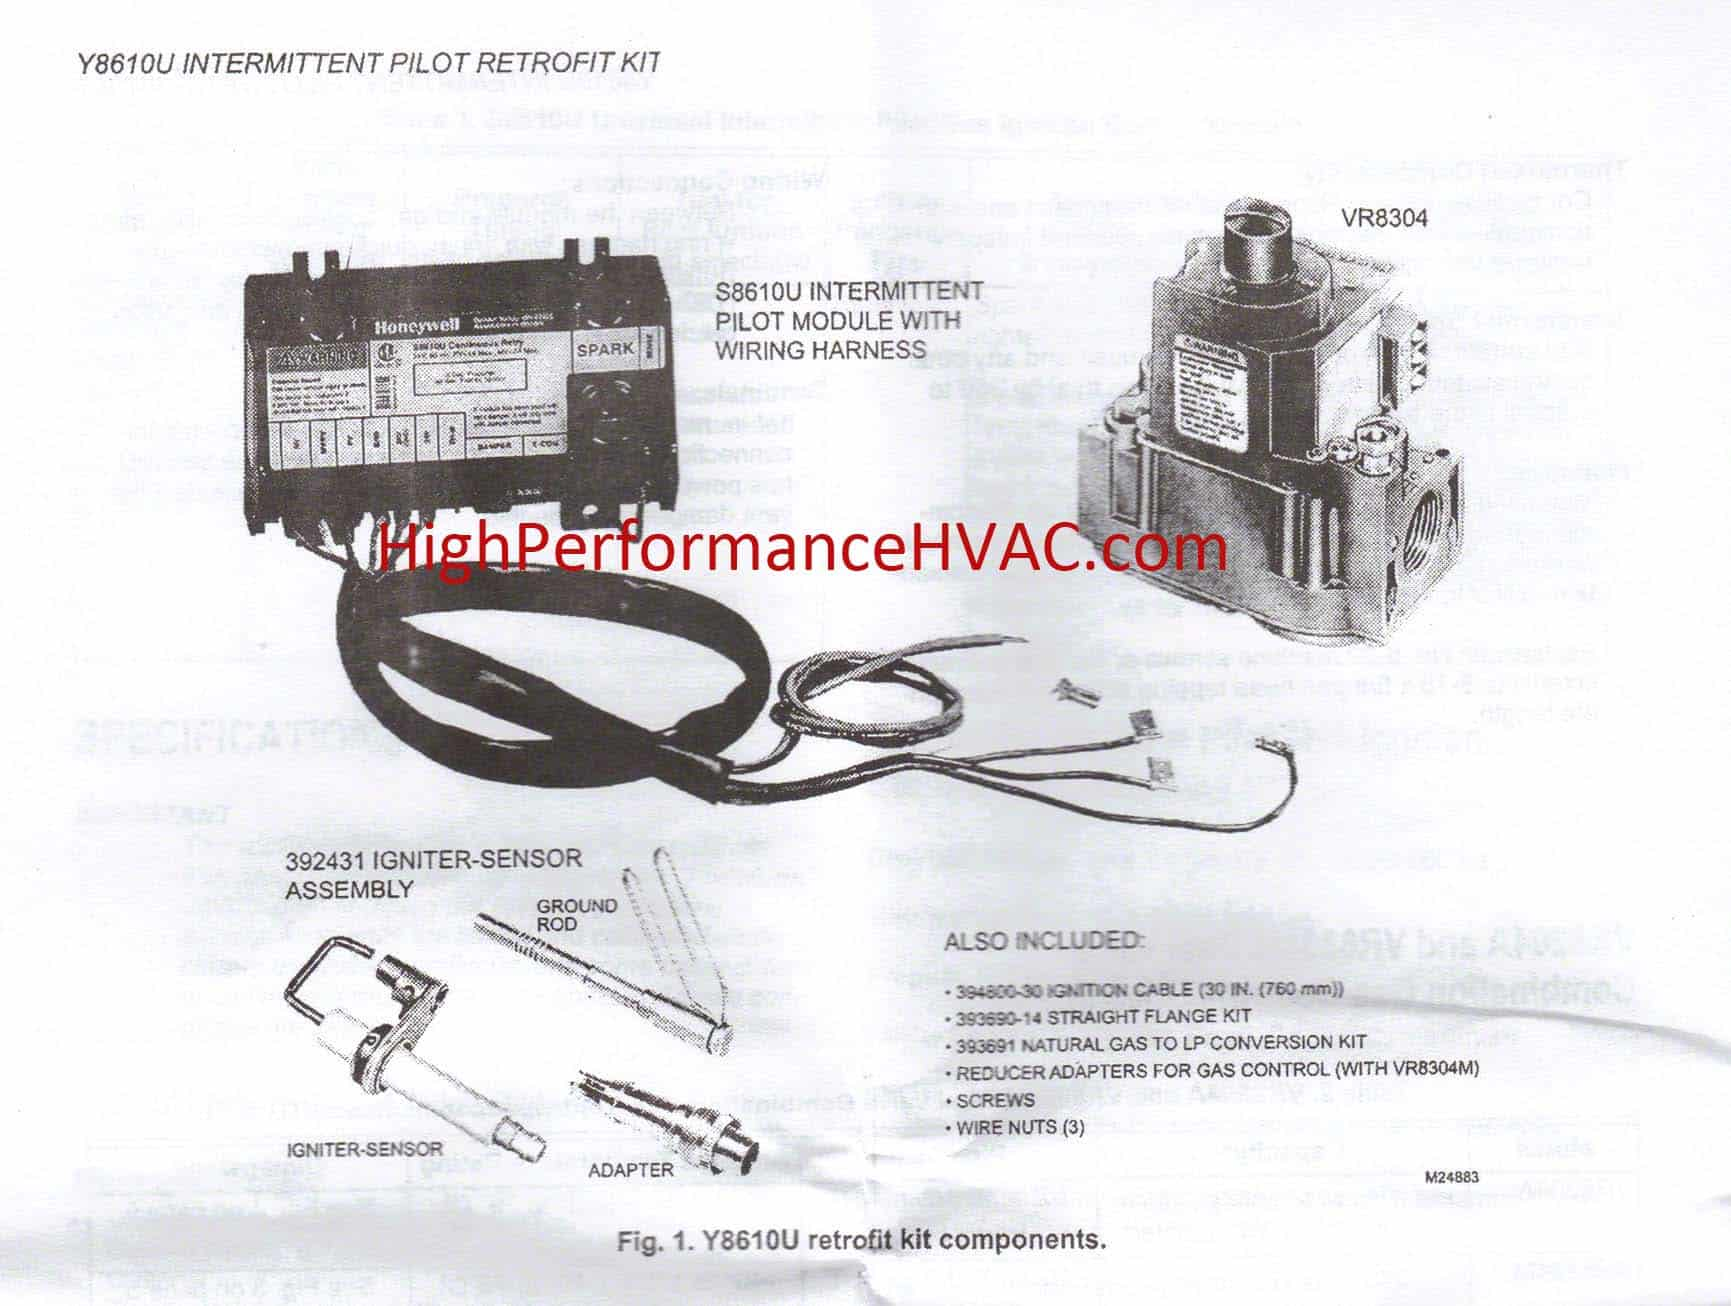 honeywell_retrofit_kit_electronic_ignition?resize=273%2C205&ssl=1 a standing pilot boiler to electronic ignition  at aneh.co